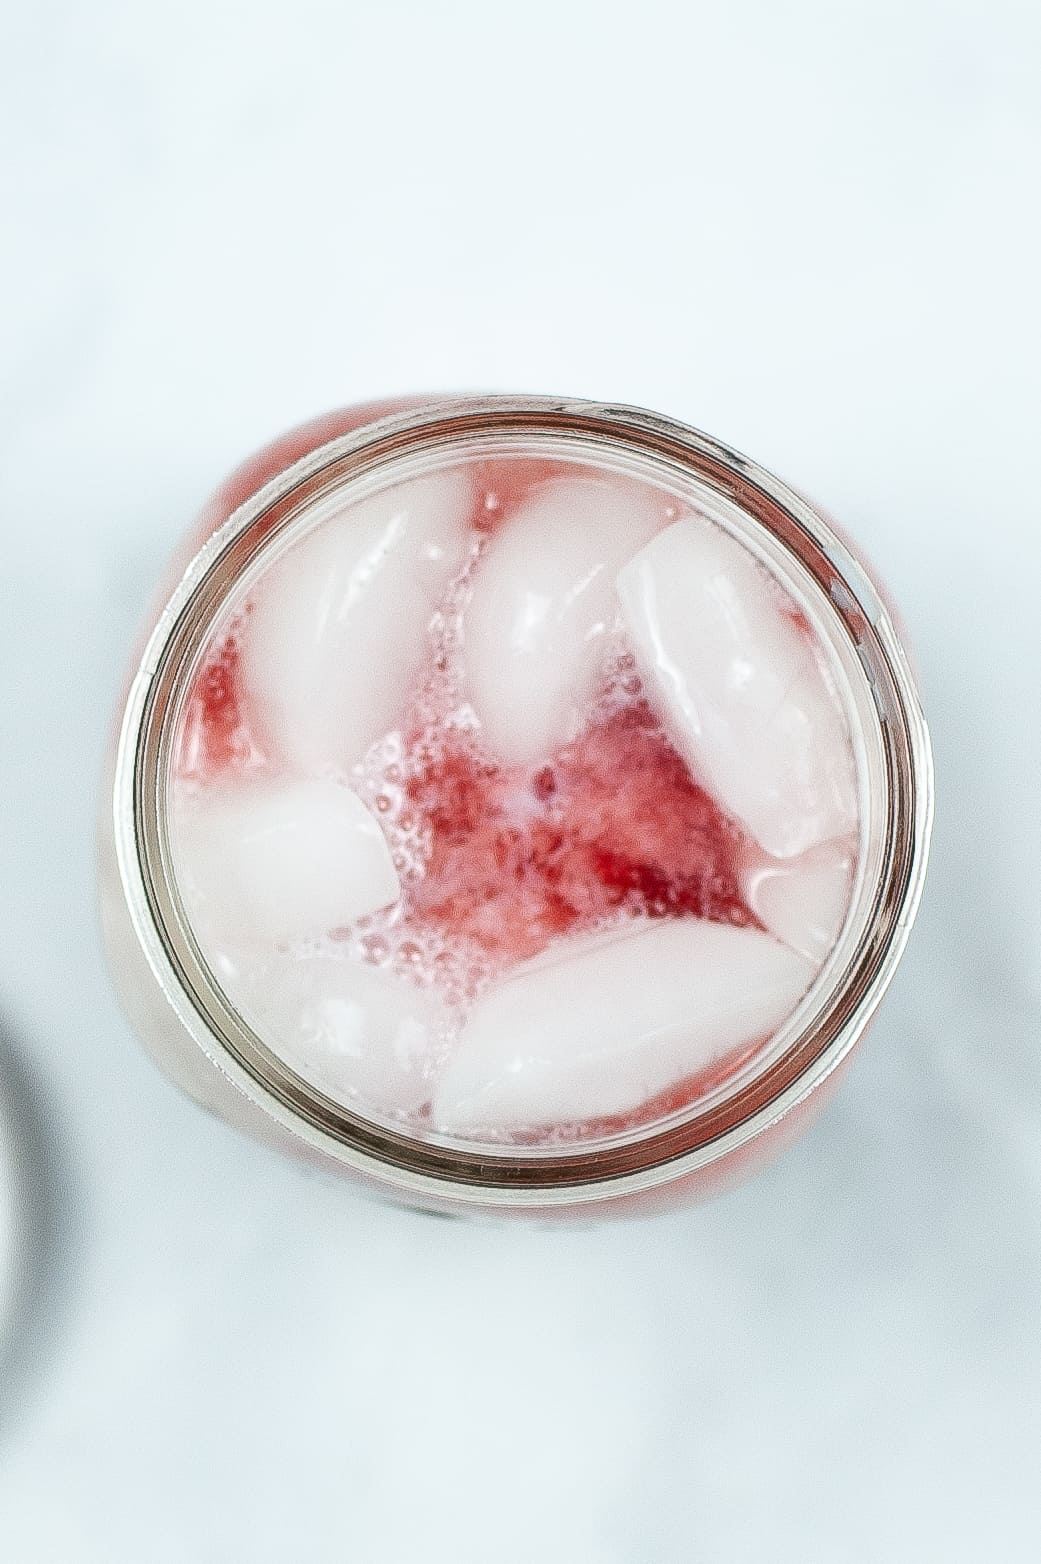 Tip shot of pink drink with ice.